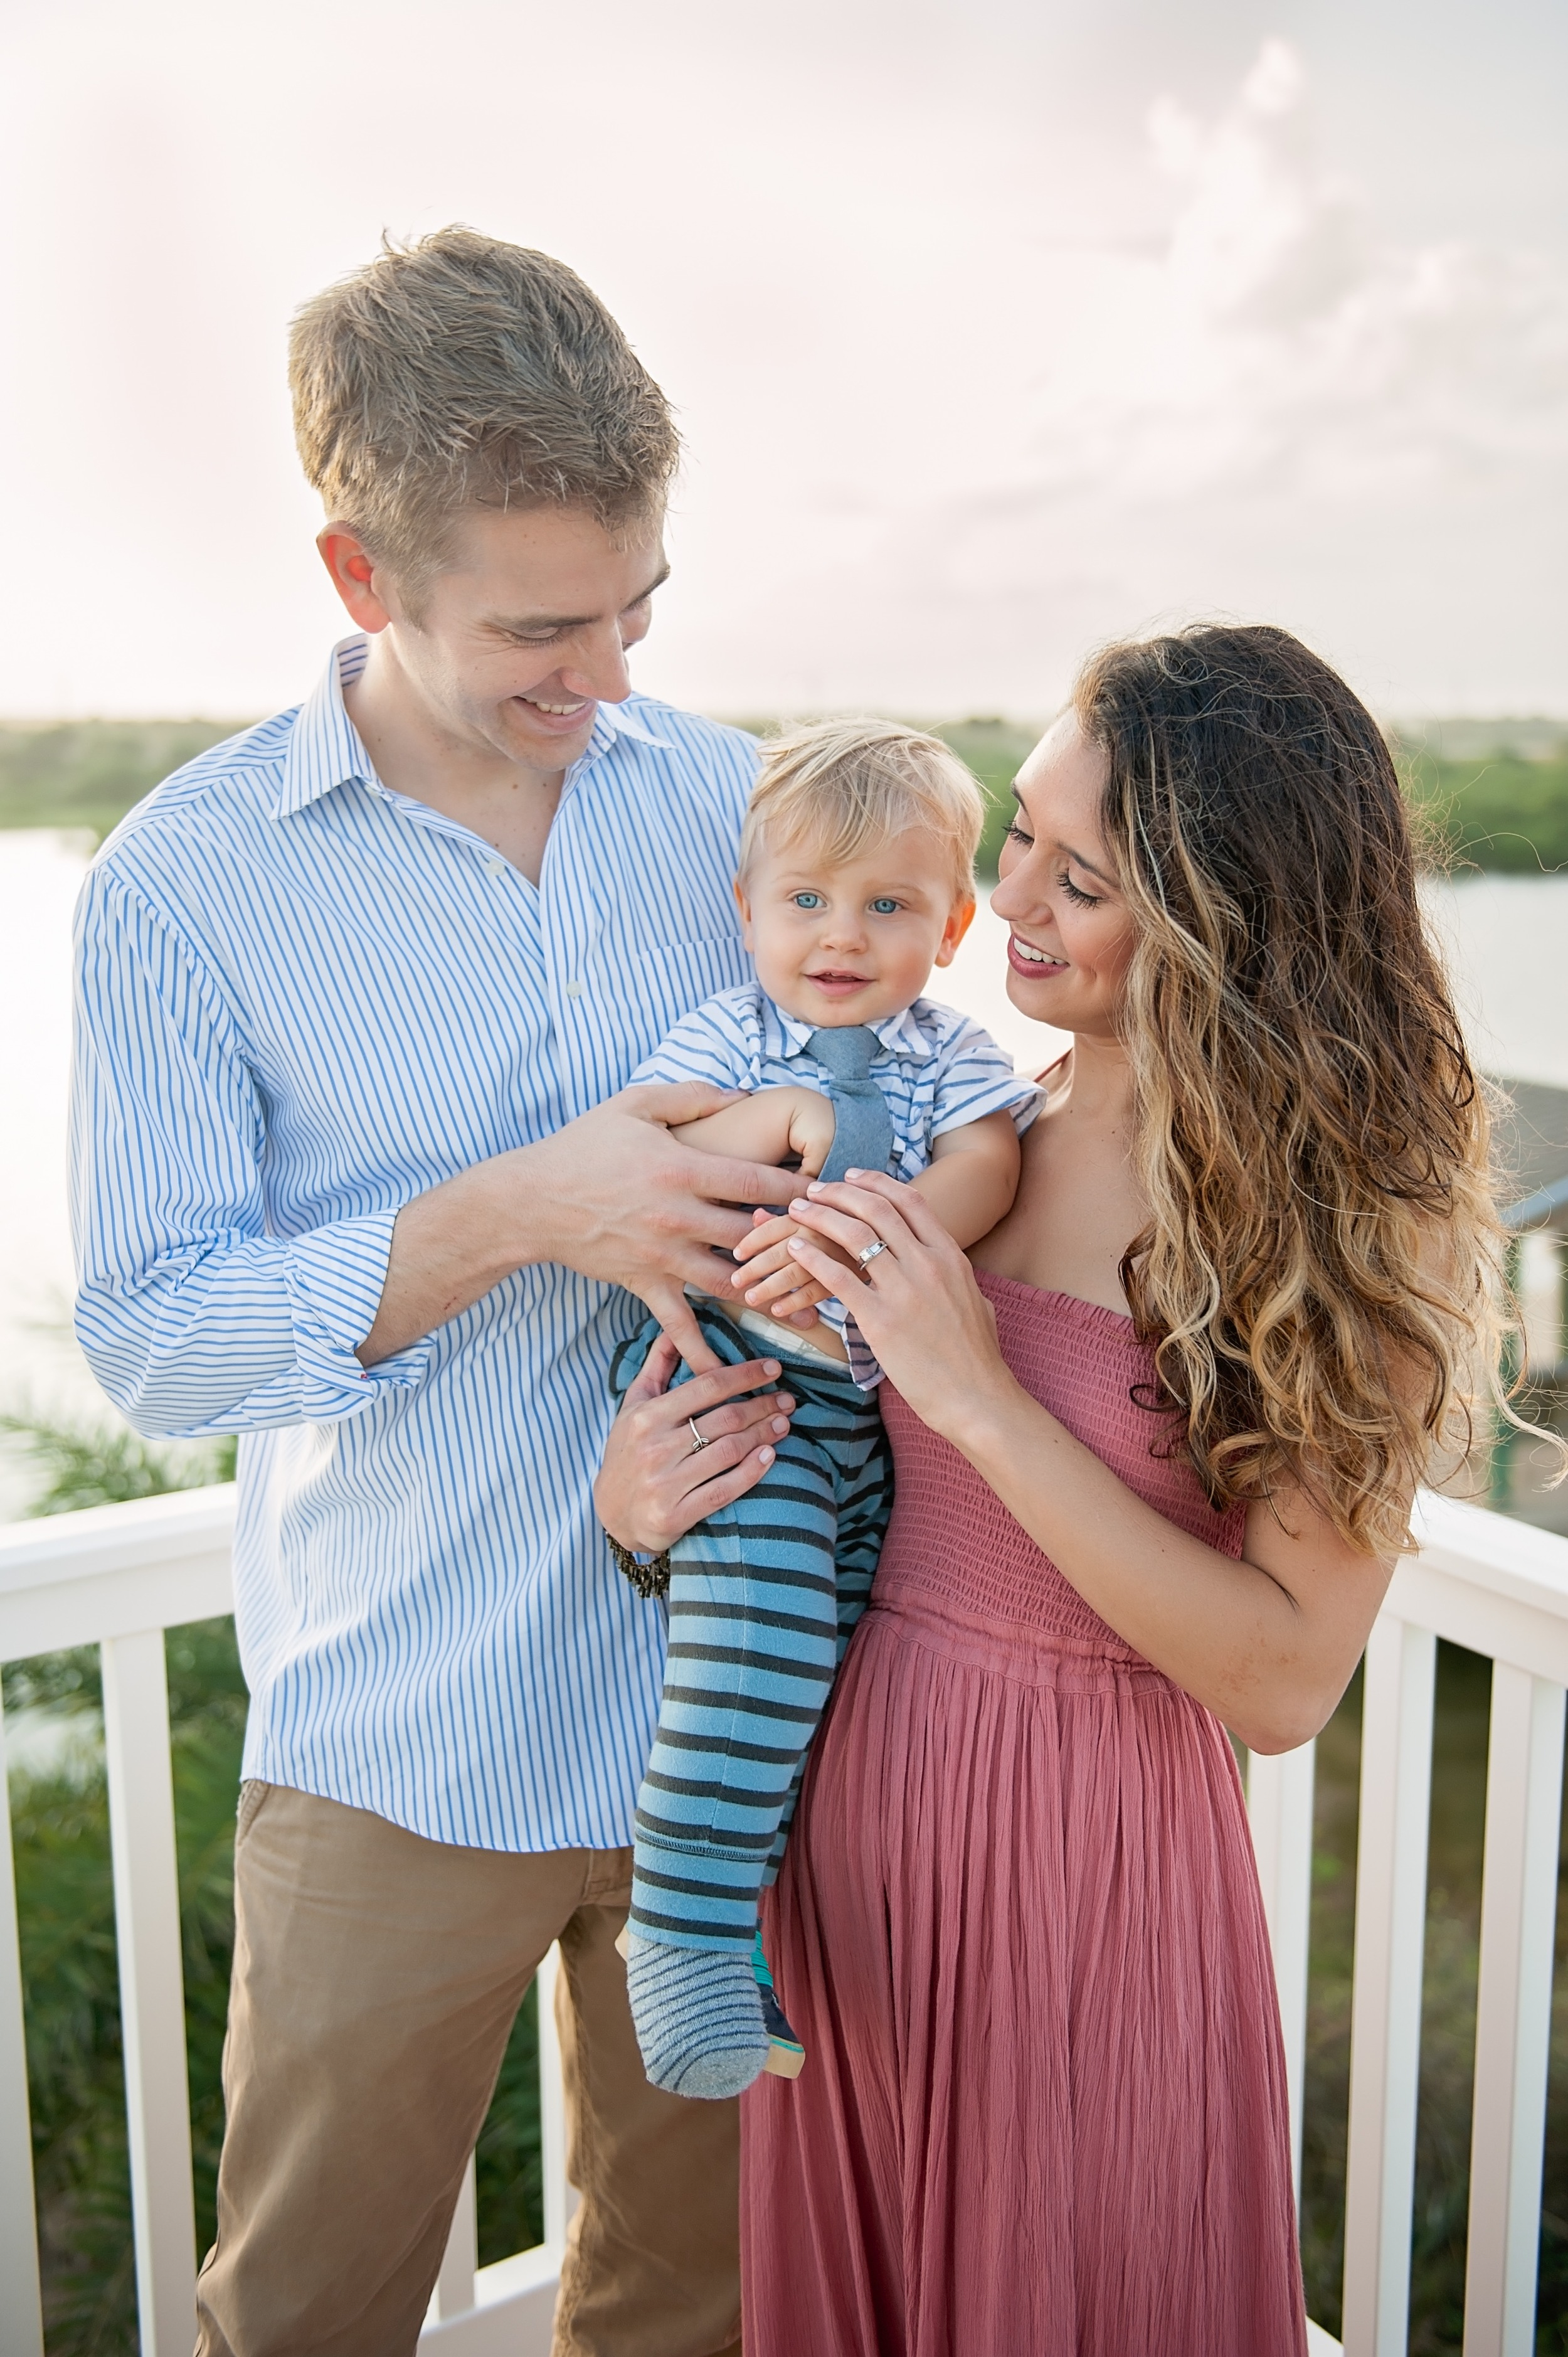 All photos by Sarah Massie of  Mint & Honey Photography